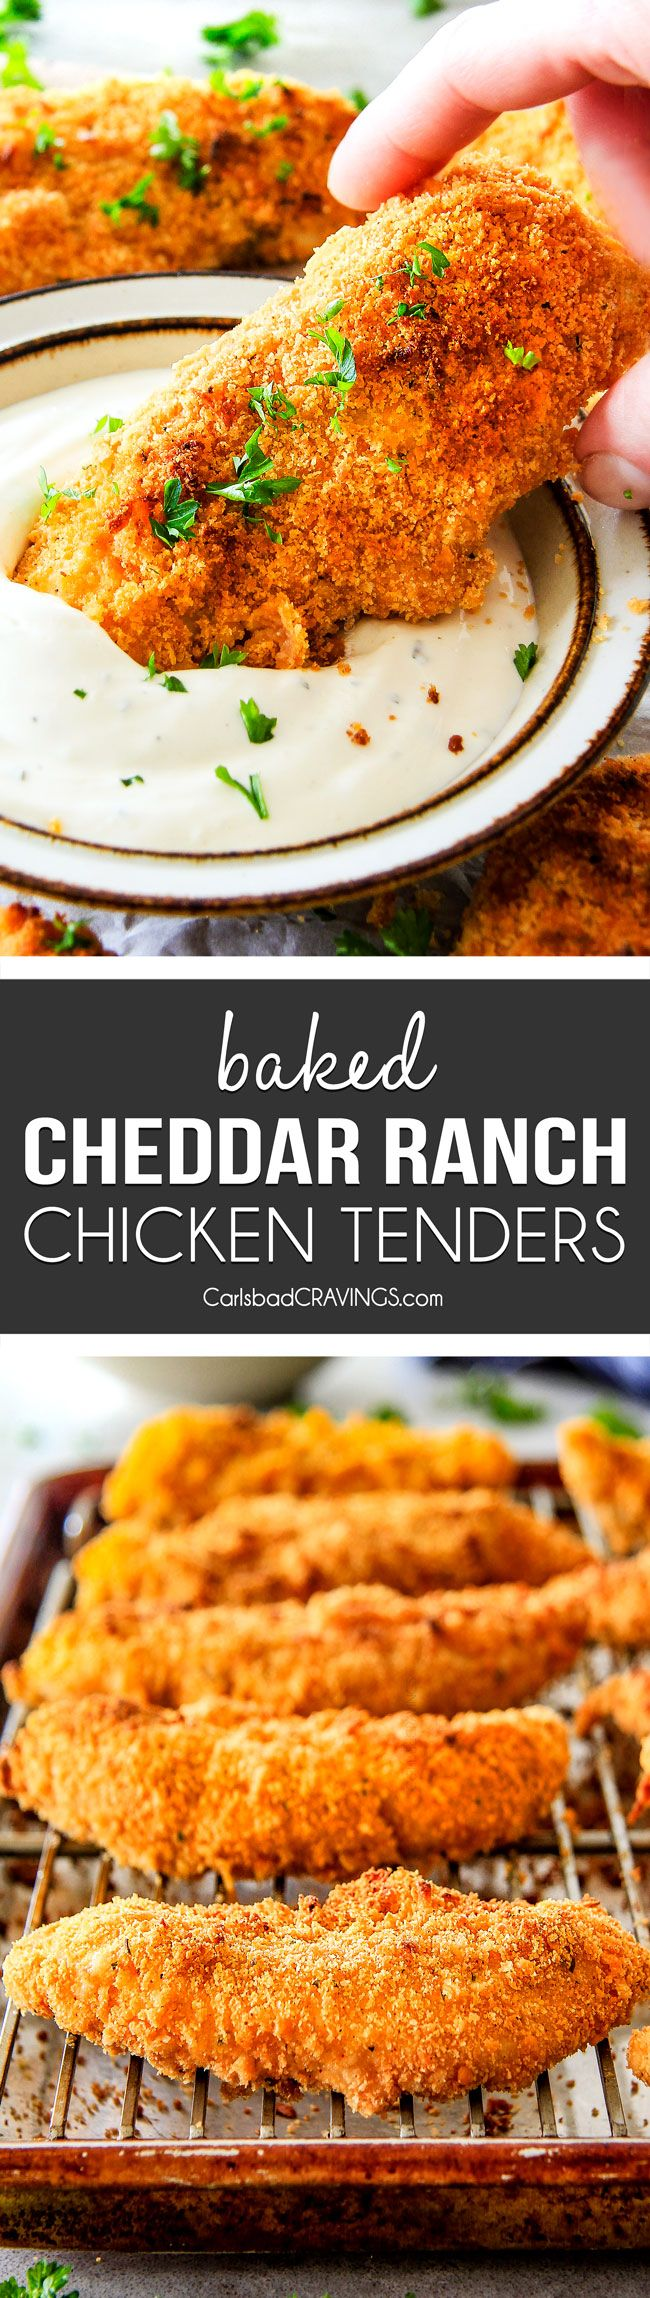 incredibly tender, juicy flavorful Baked Cheddar Ranch Chicken Tenders coated in the most AMAZING cheese cracker breading!  These are pure addicting and SO EASY!  via @carlsbadcraving